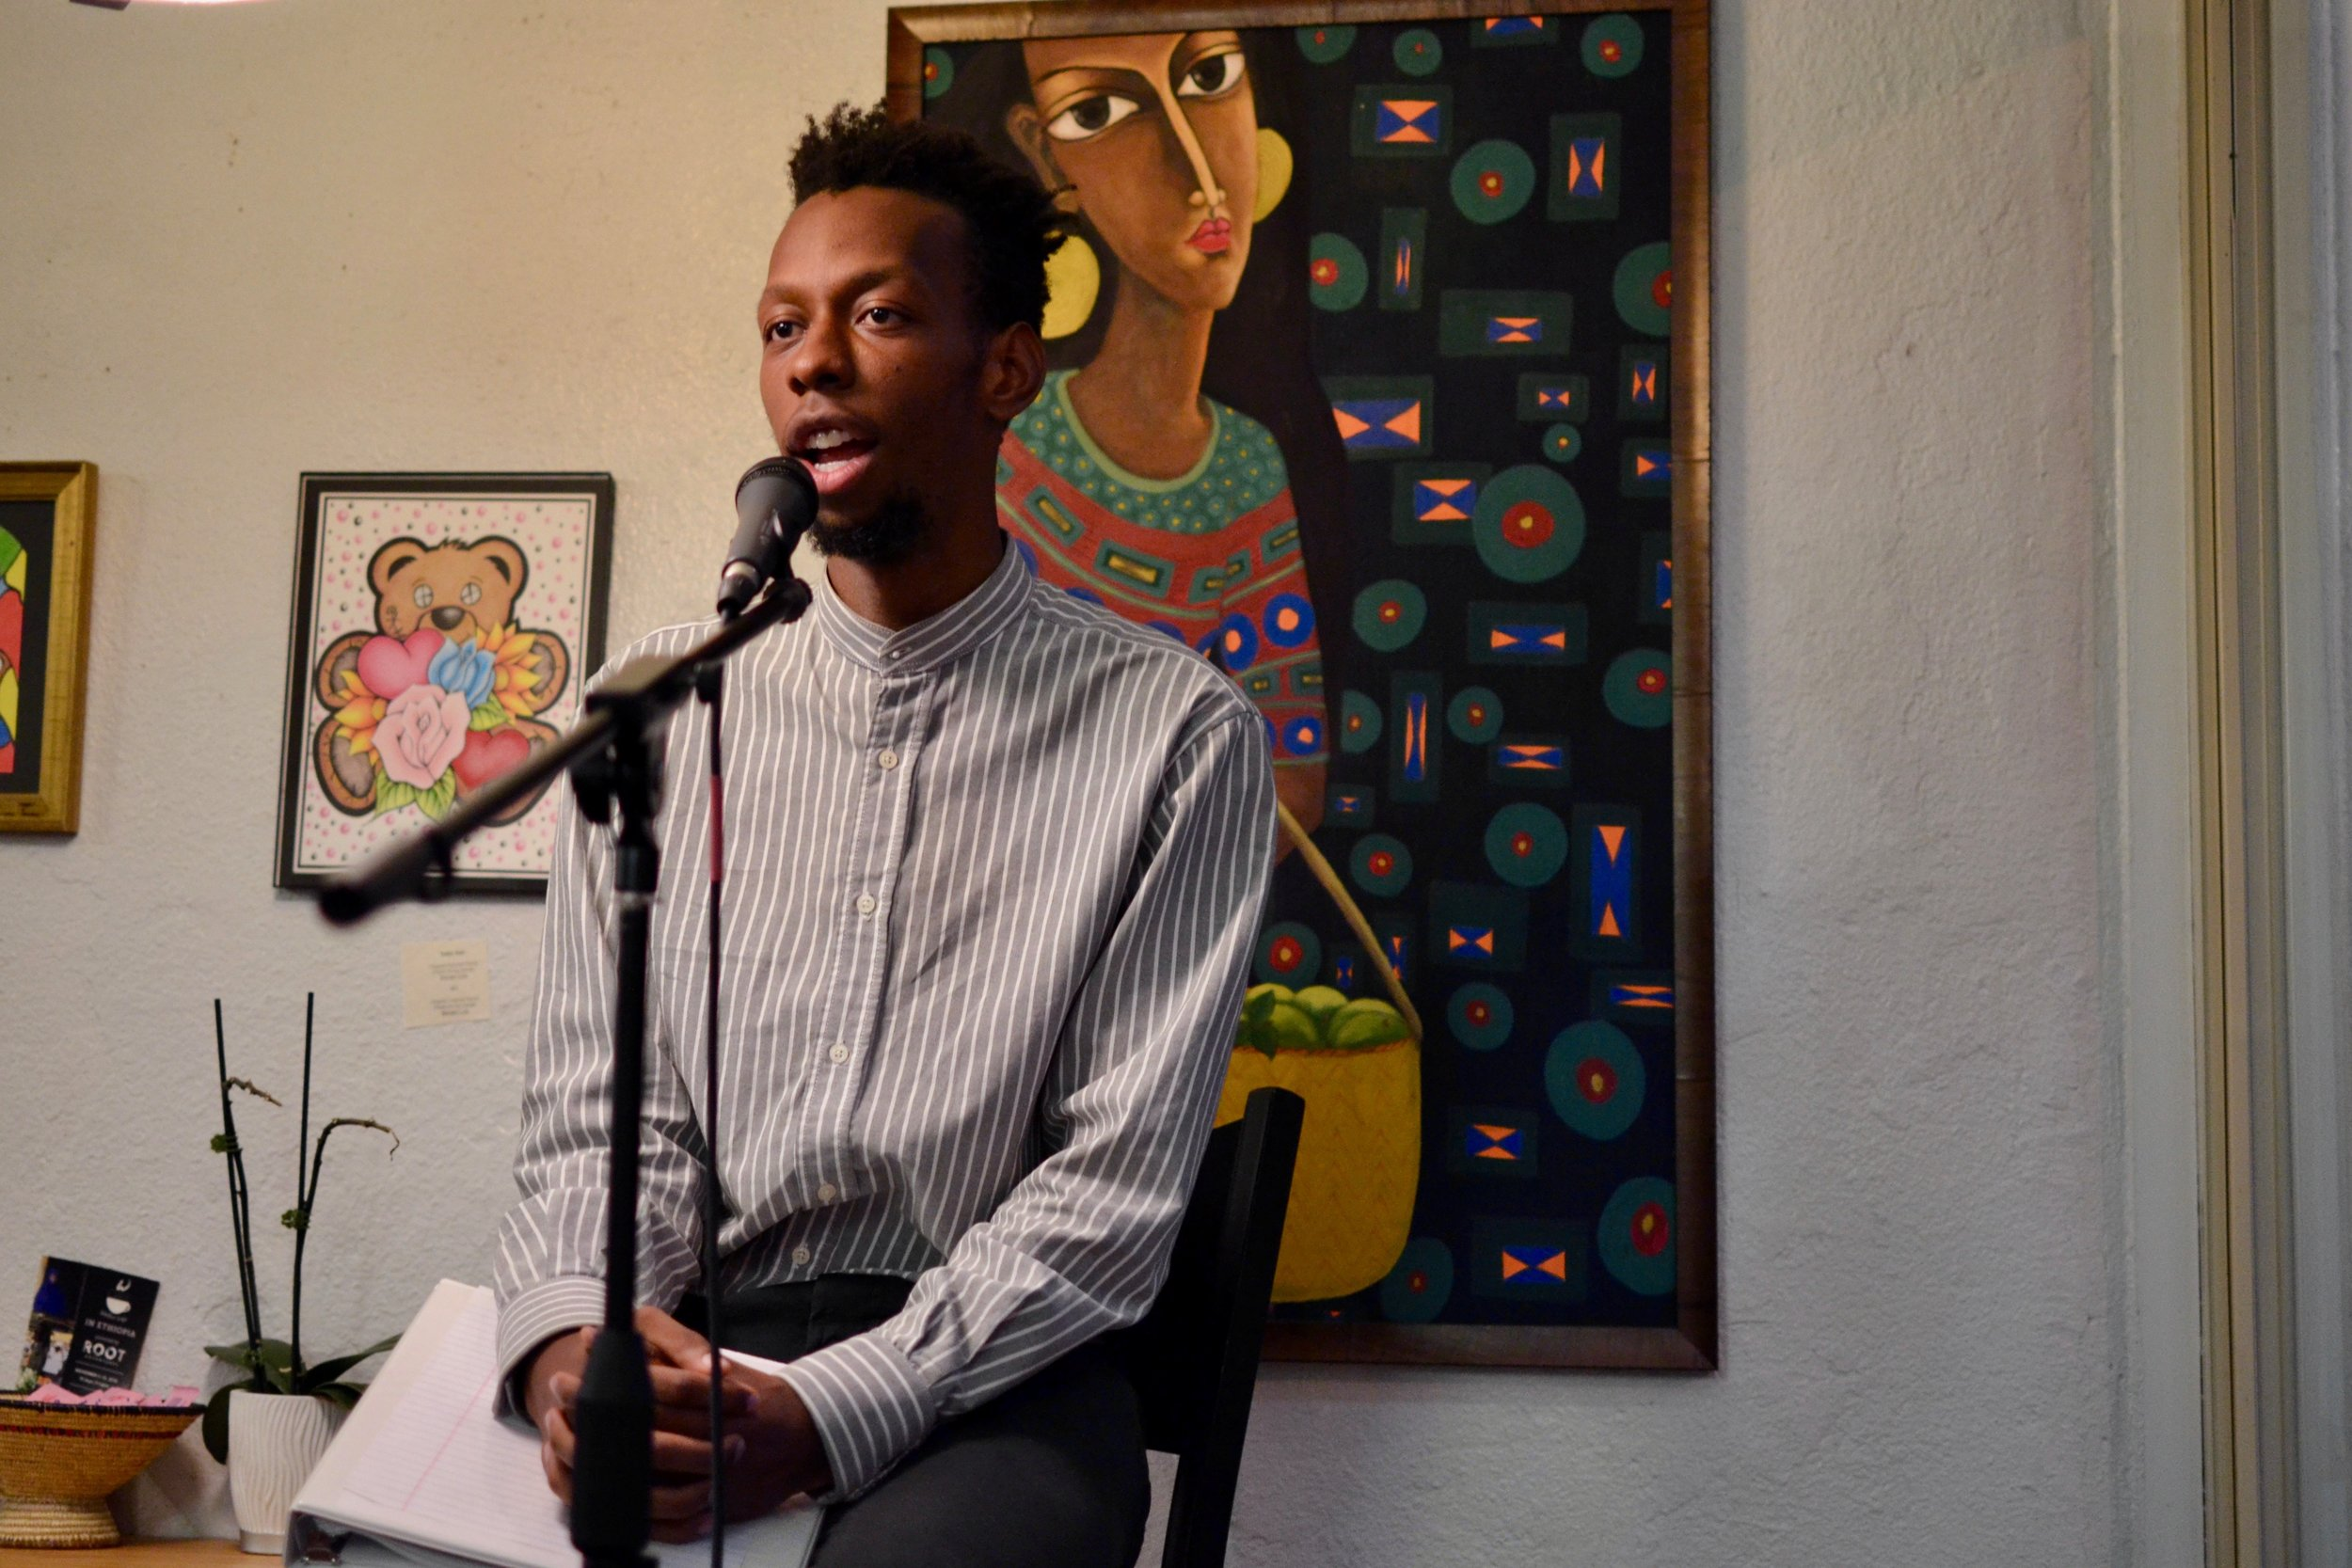 Brenton Weyi at Stain'd Arts Open Mic, 2018 Photographer, Delia LaJeunesse